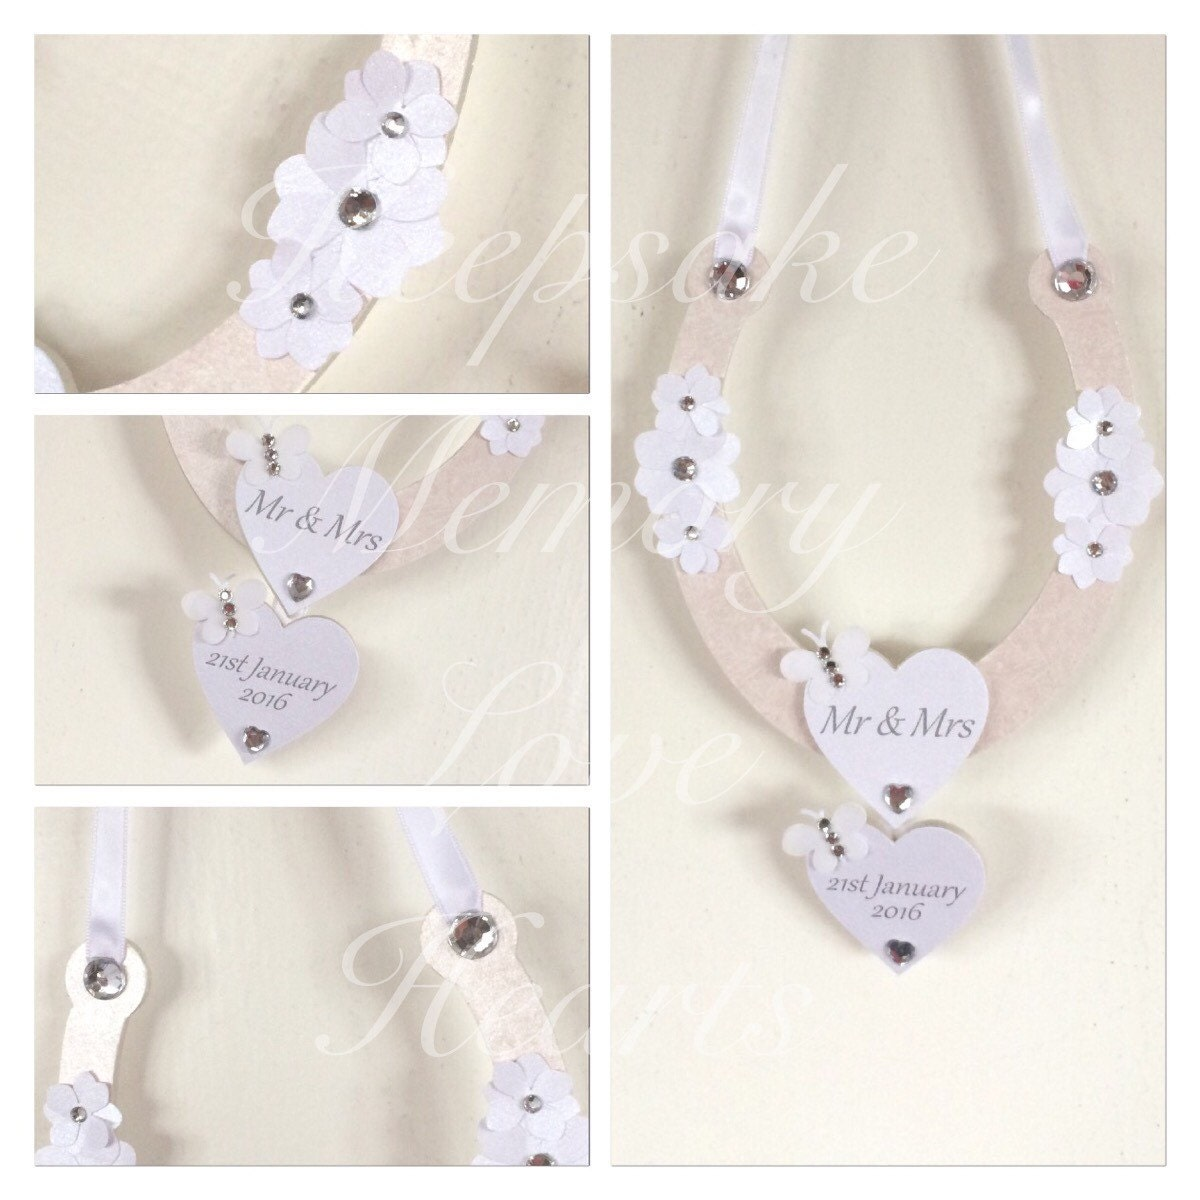 Horseshoe wedding gift personalised wooden plaque